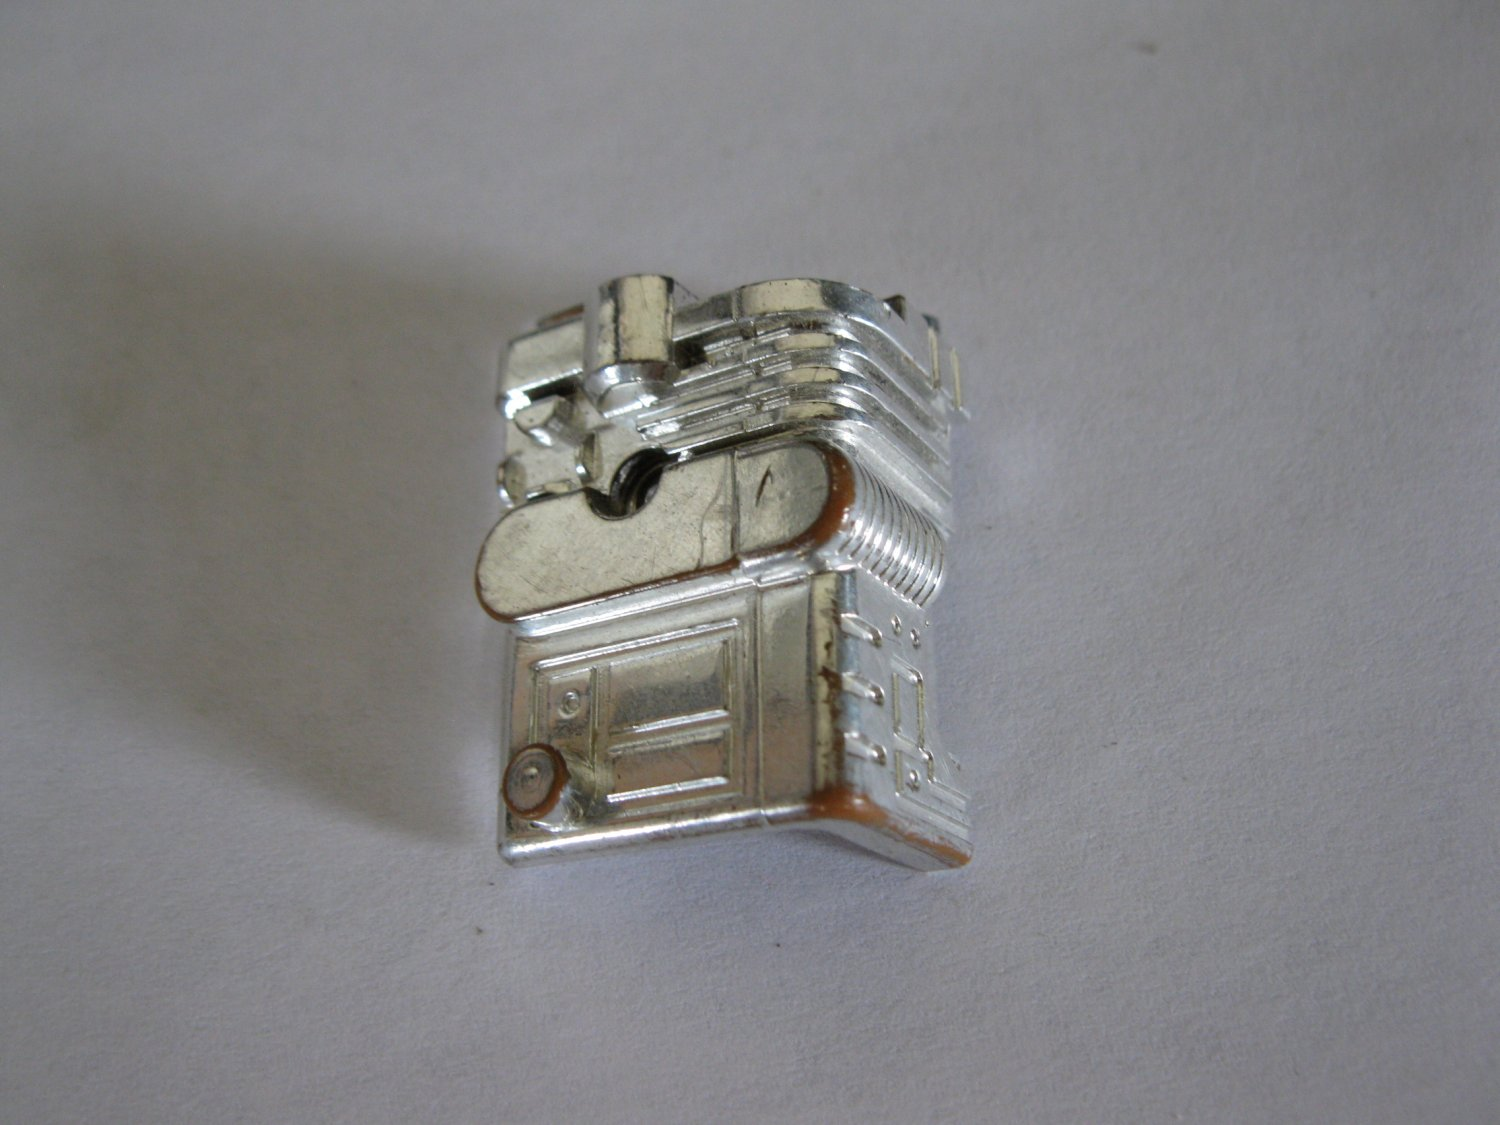 G1 Transformers Action figure part: 1986 Wreck-Gar - Chrome Engine / Chest Right Side